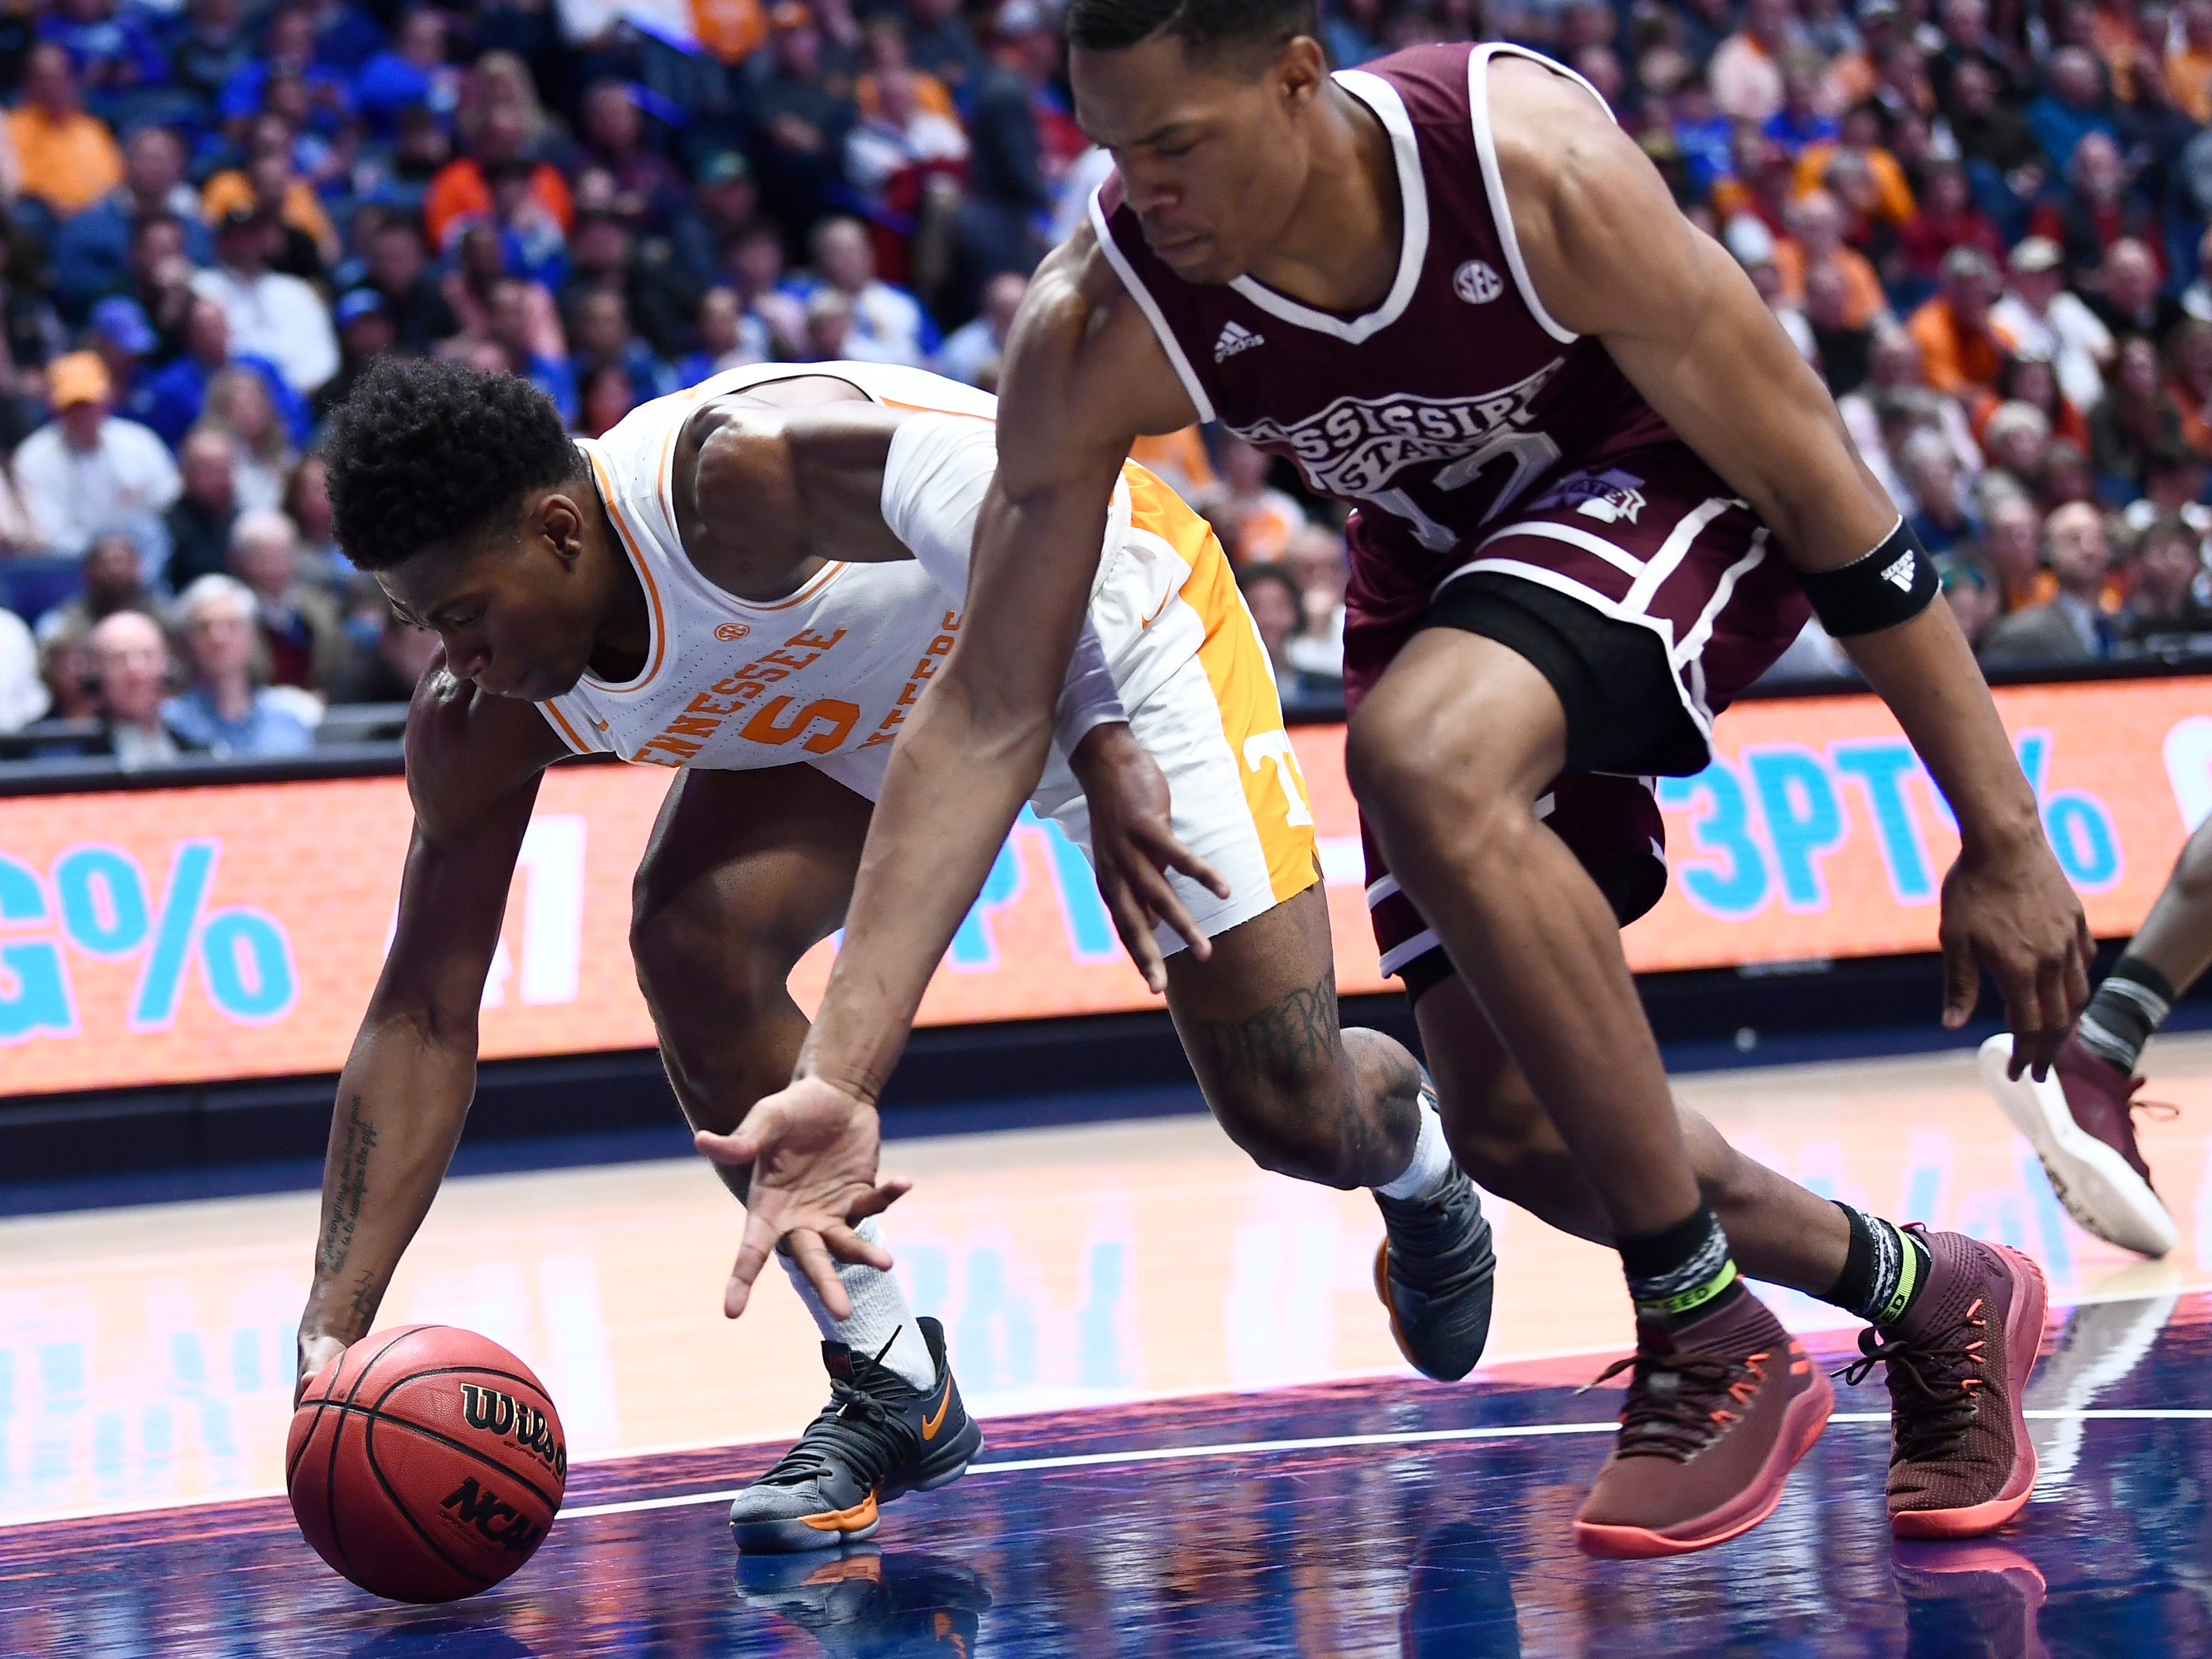 Tennessee guard Admiral Schofield (5) and Mississippi State guard Robert Woodard (12) battle for the ball during the first half of the SEC Men's Basketball Tournament game at Bridgestone Arena in Nashville, Tenn., Friday, March 15, 2019.